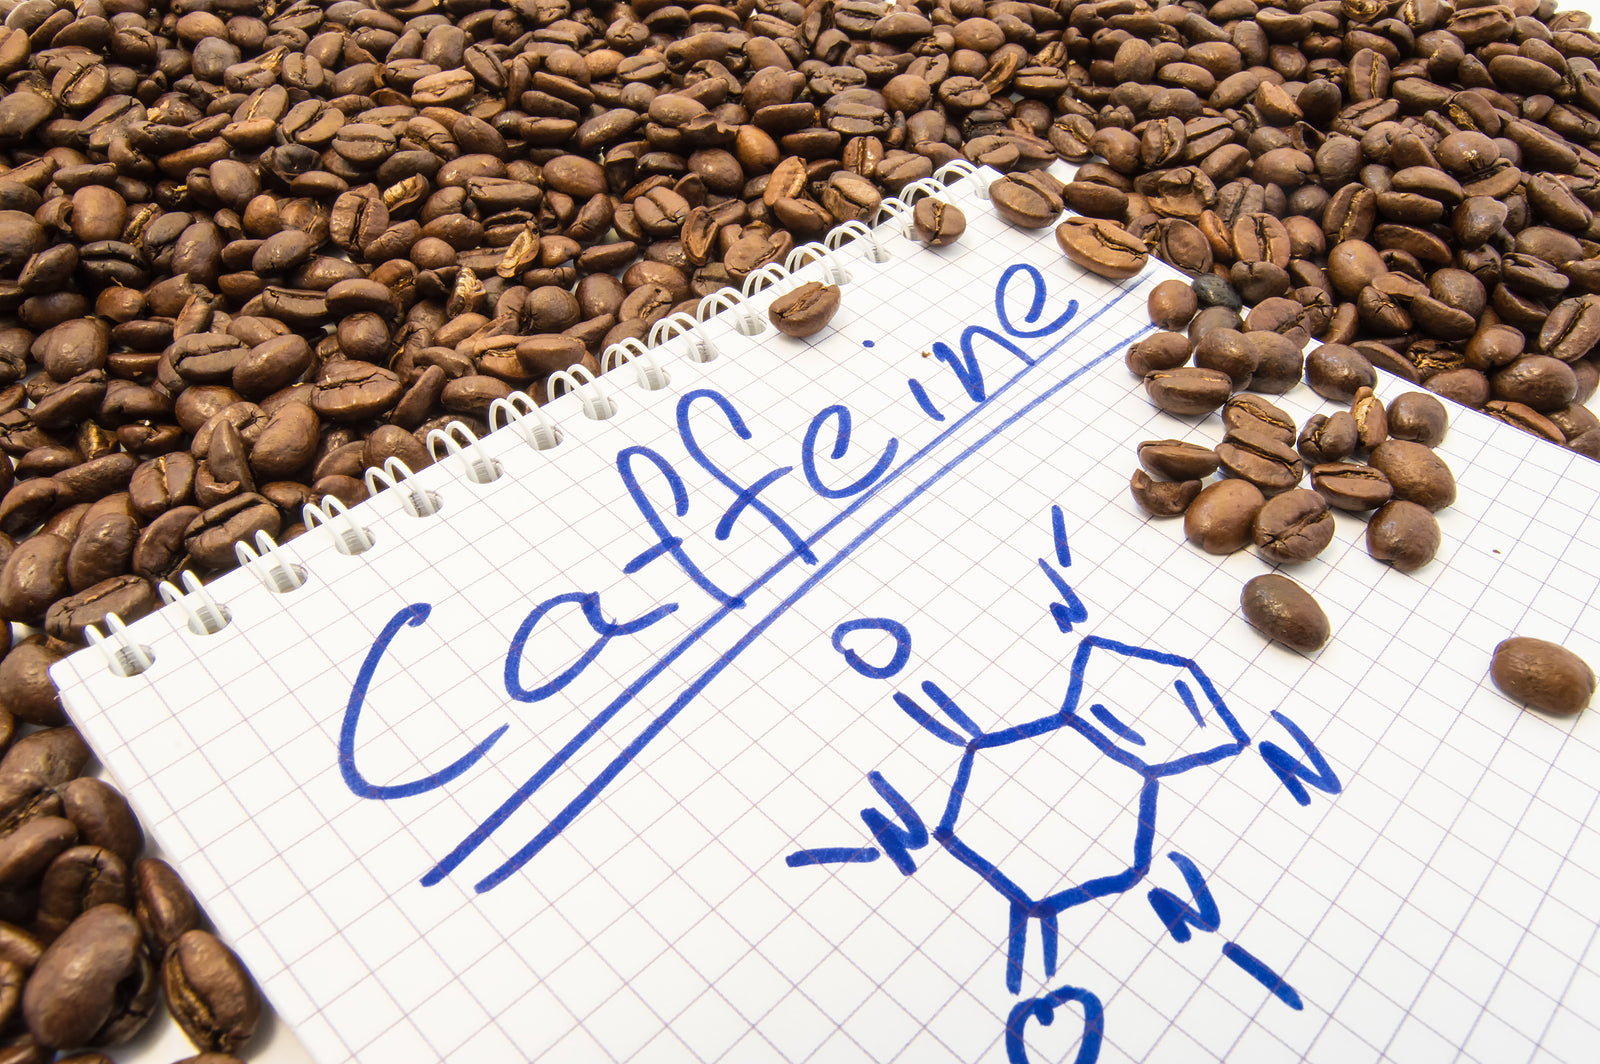 caffeine written on a piece of paper surrounded by coffee beans